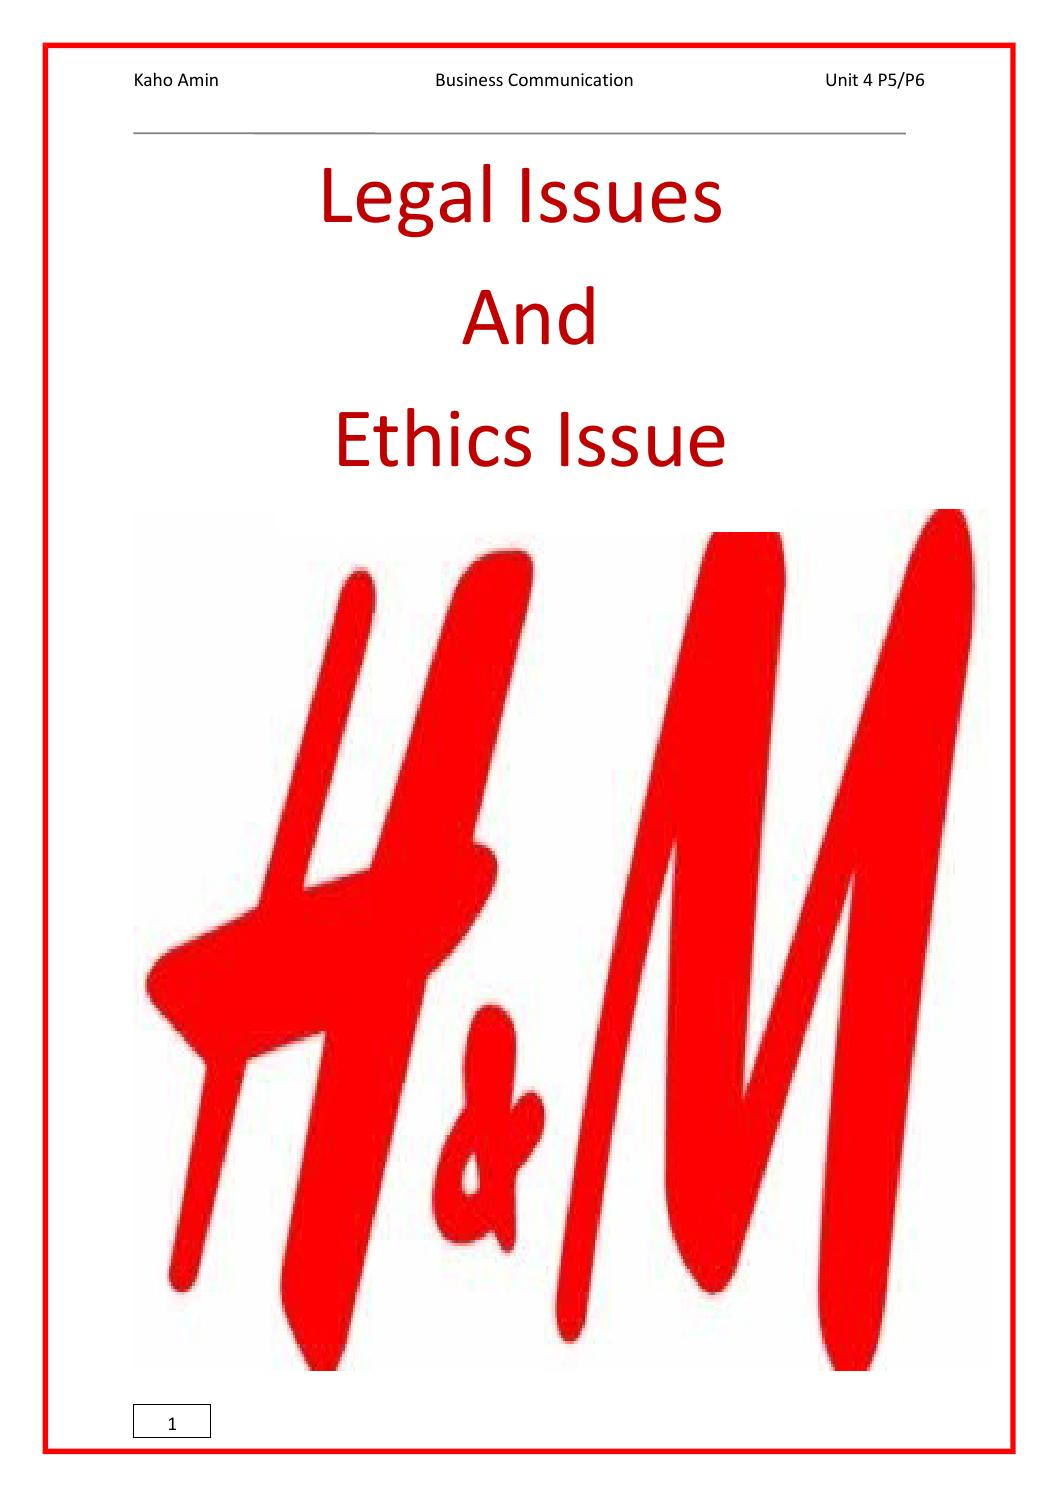 legal issues in business communication